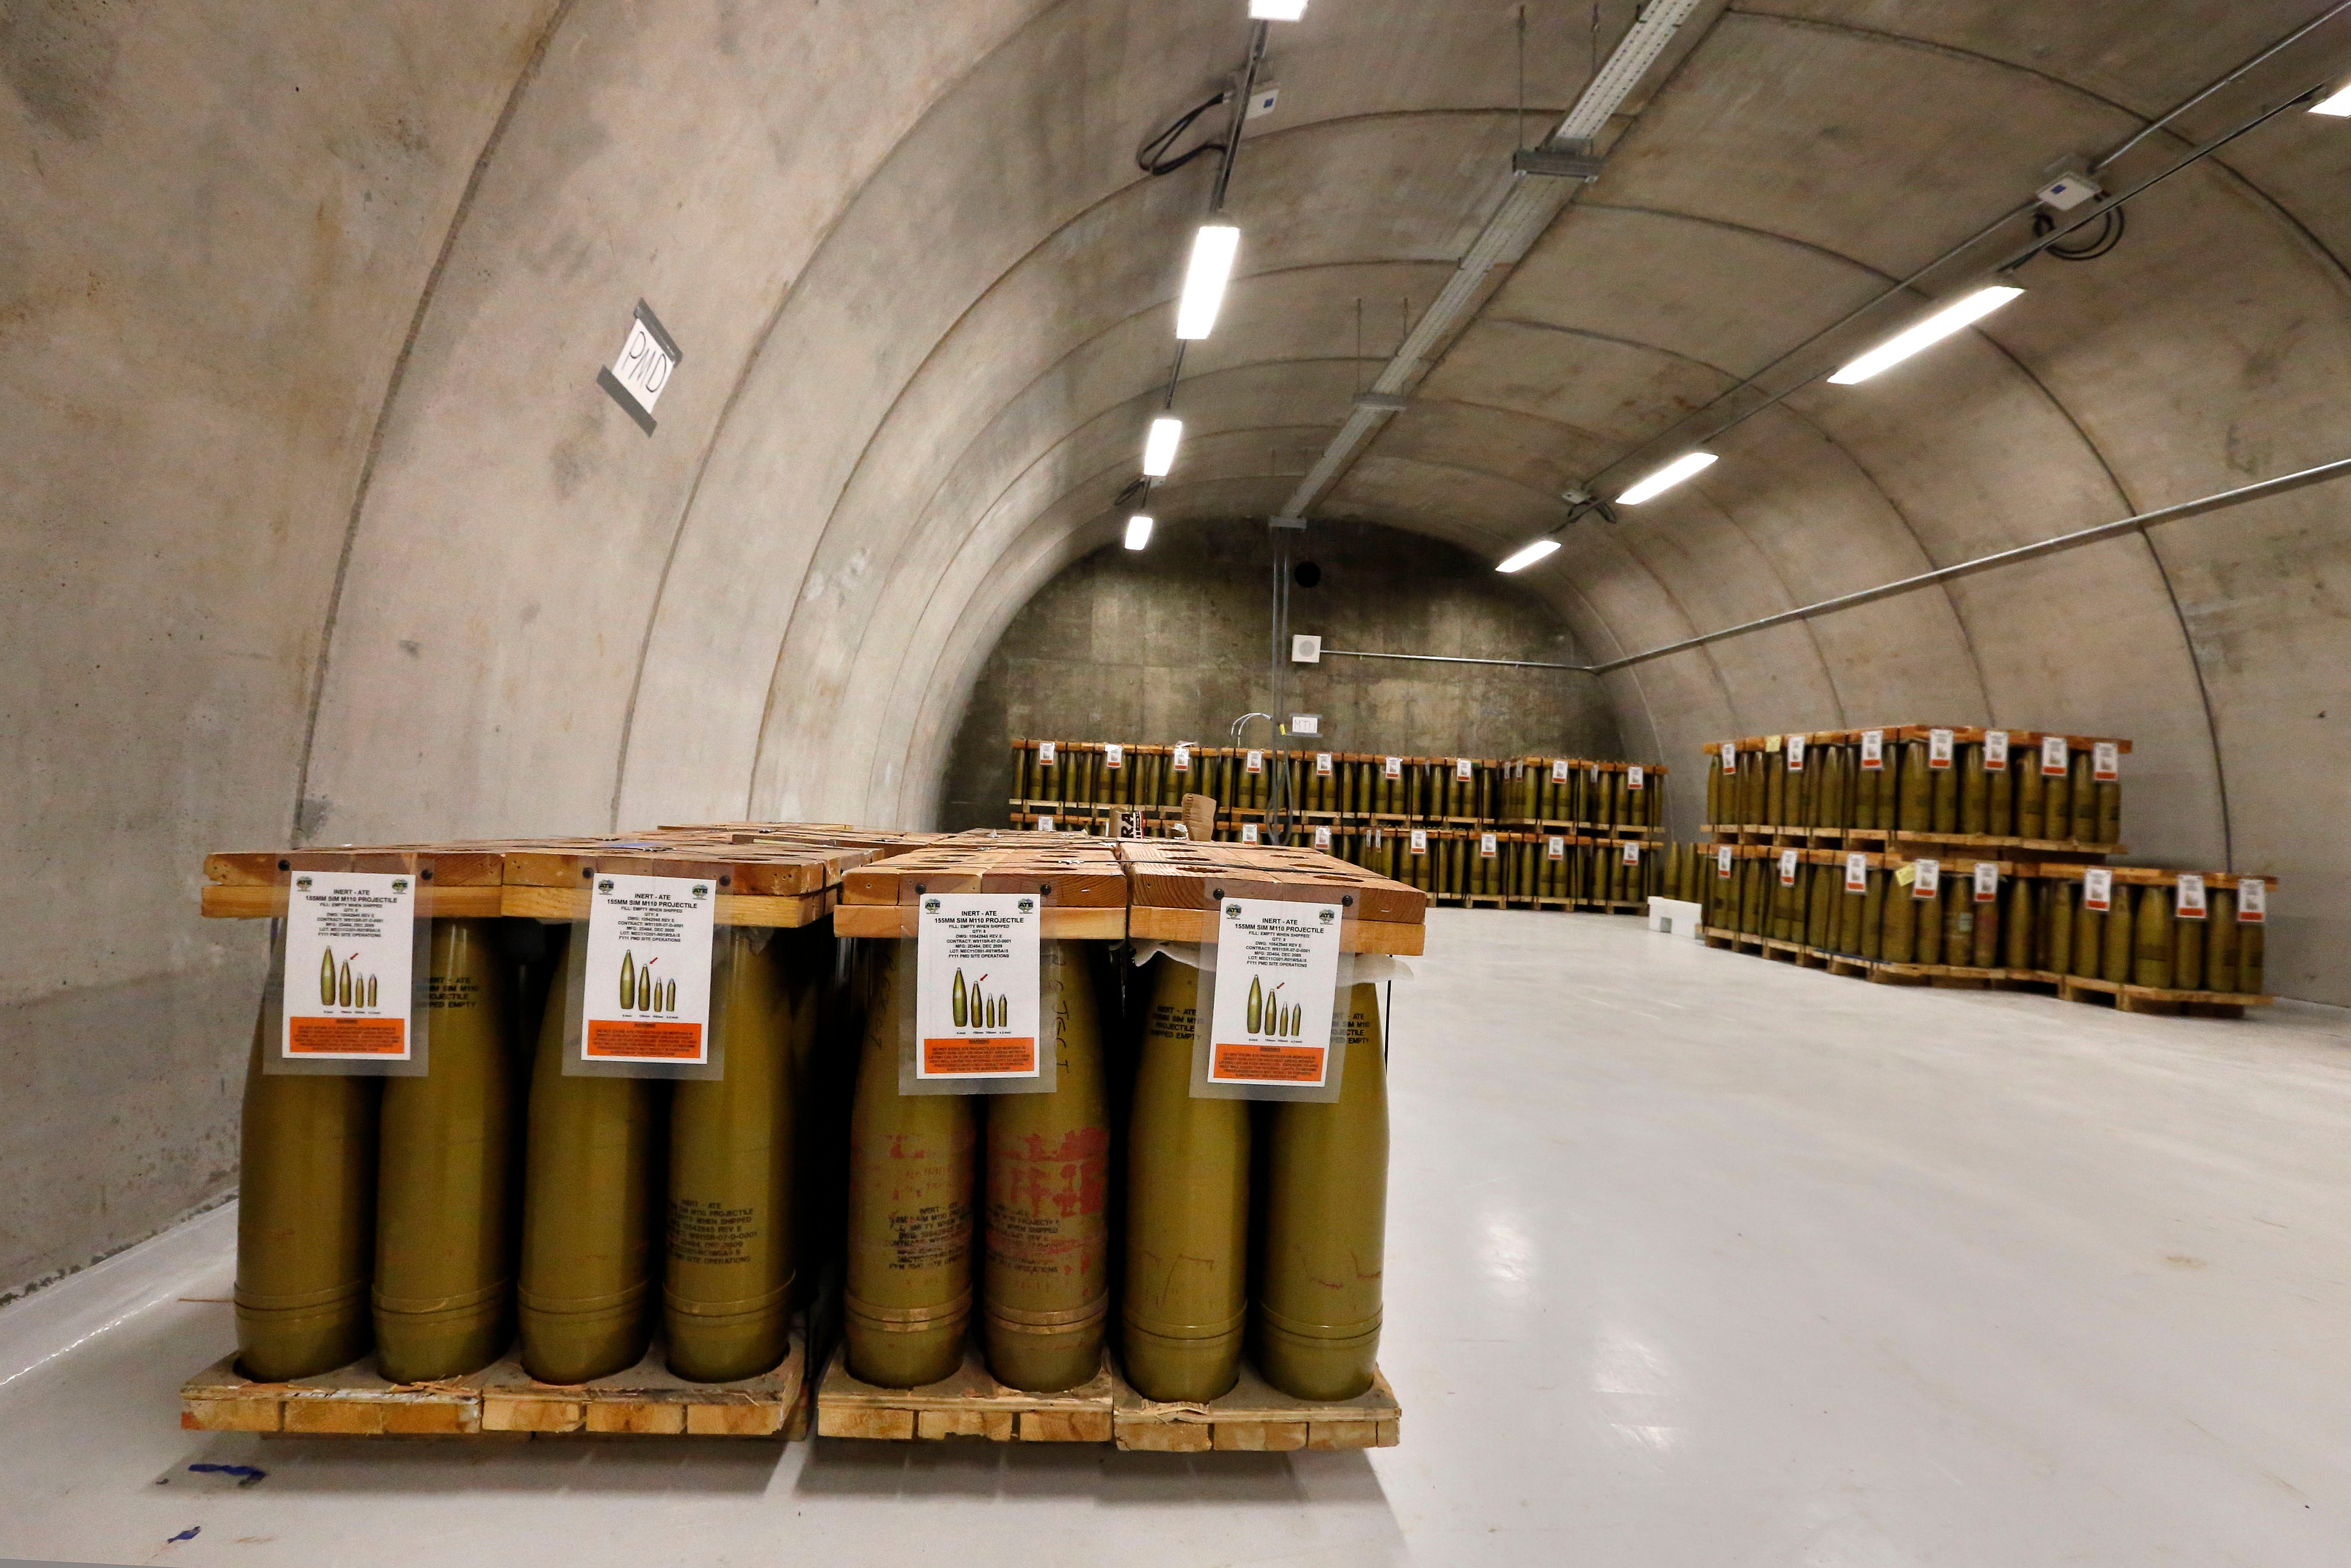 Inside the Bunkers Where the US Will Obliterate Its Chemical Weapons